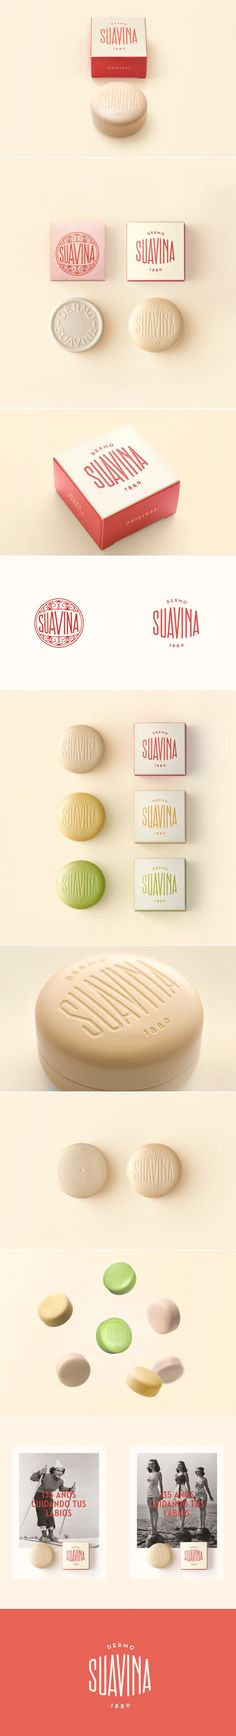 This Traditional Spanish Lip Balm Brand Gets An Elegant New Look — The Dieline | Packaging & Branding Design & Innovation News